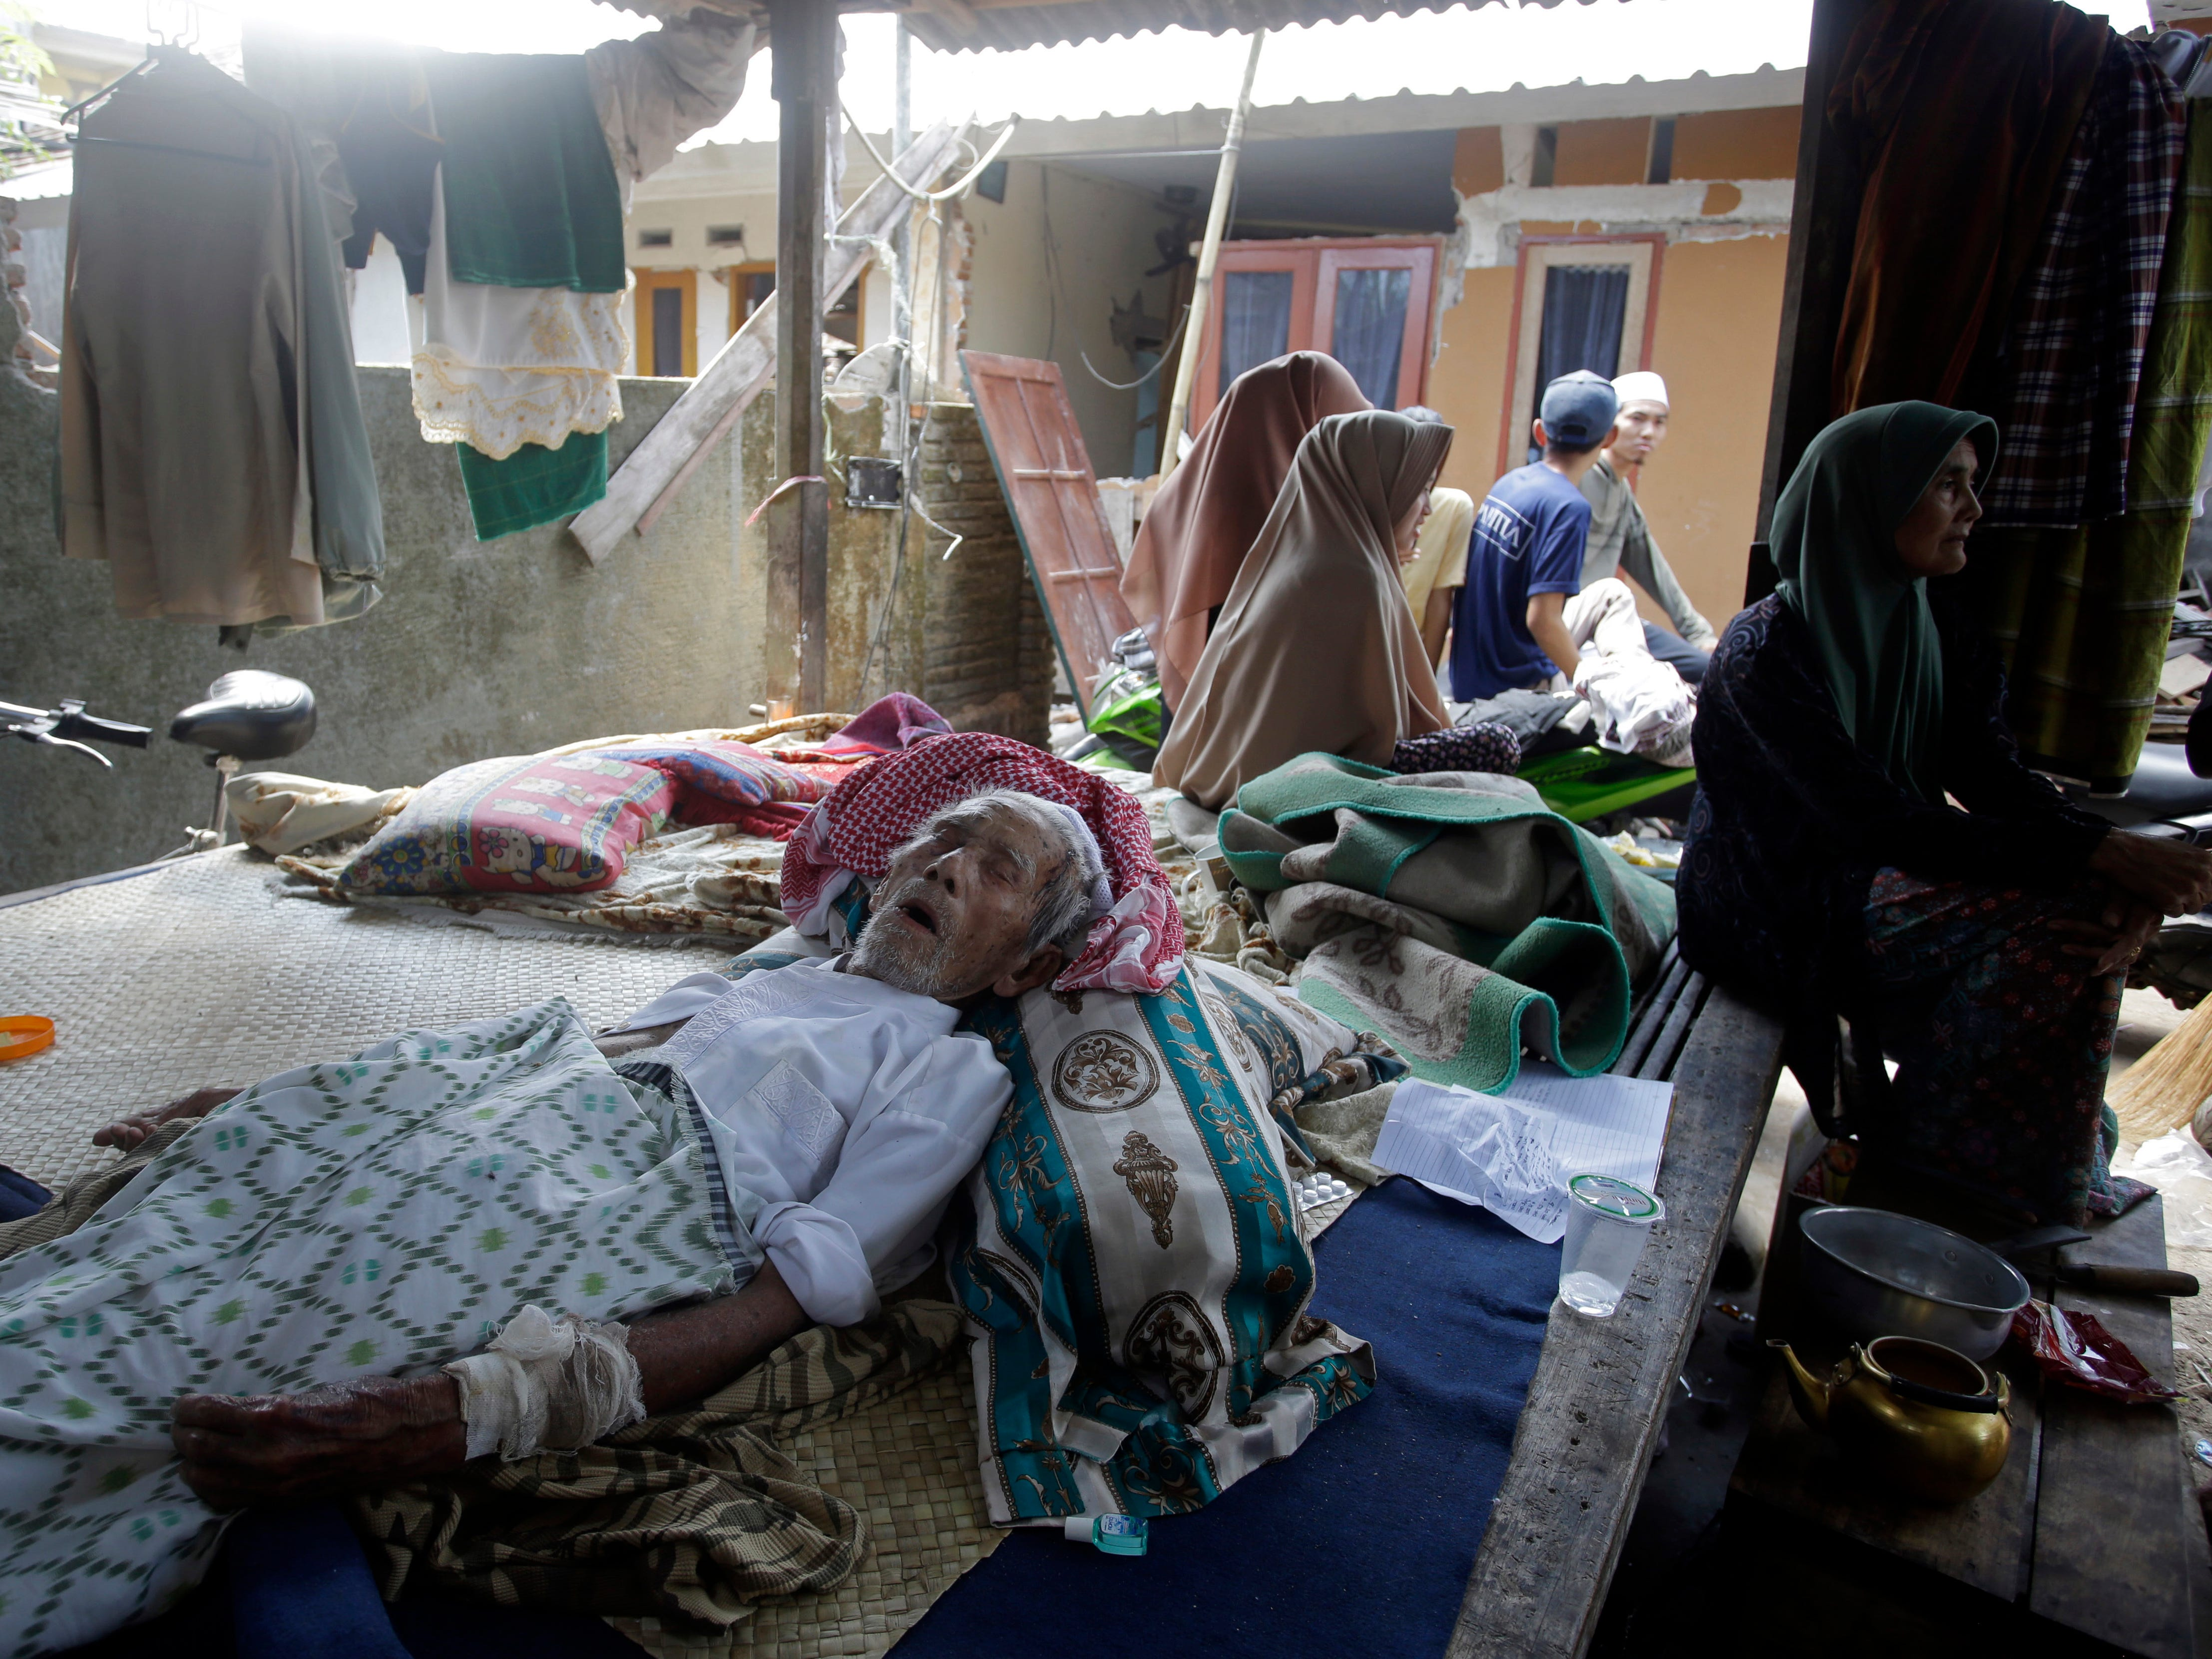 An elderly man injured in an earthquake lies at a temporary shelter in the Kekait village affected by Sunday's earthquake in North Lombok, Indonesia on Weds. Aug. 8, 2018. Aid has begun reaching isolated areas of the Indonesian island struggling after an earthquake killed over 100 people as rescuers intensify efforts to find those buried in the rubble.